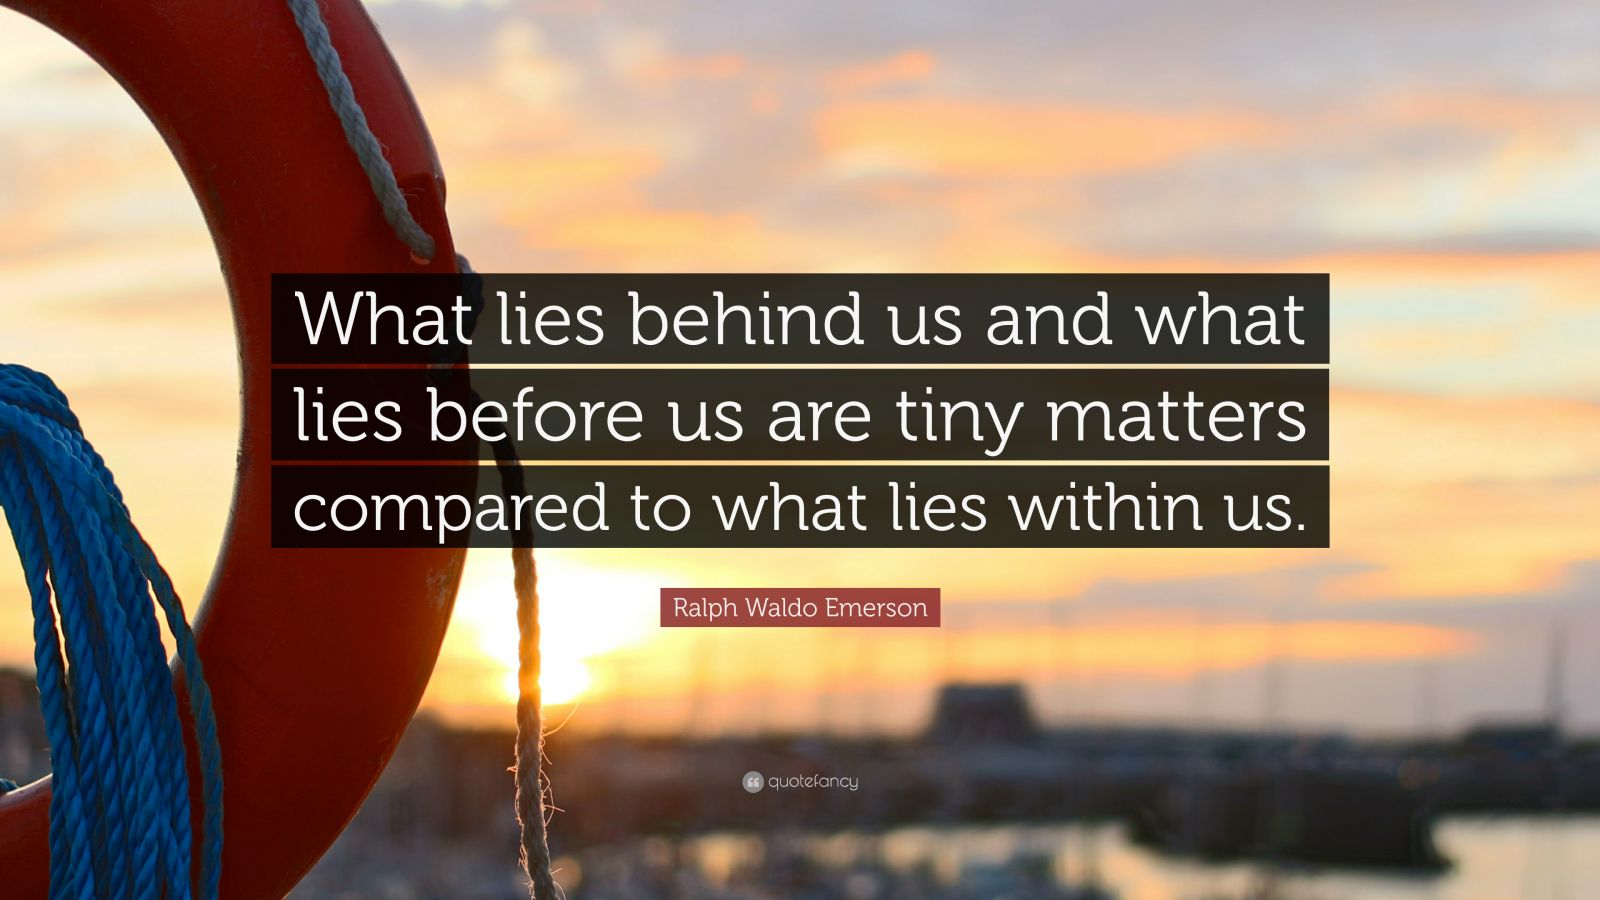 Beautiful Quotes Wallpapers On Life Ralph Waldo Emerson Quote What Lies Behind Us And What